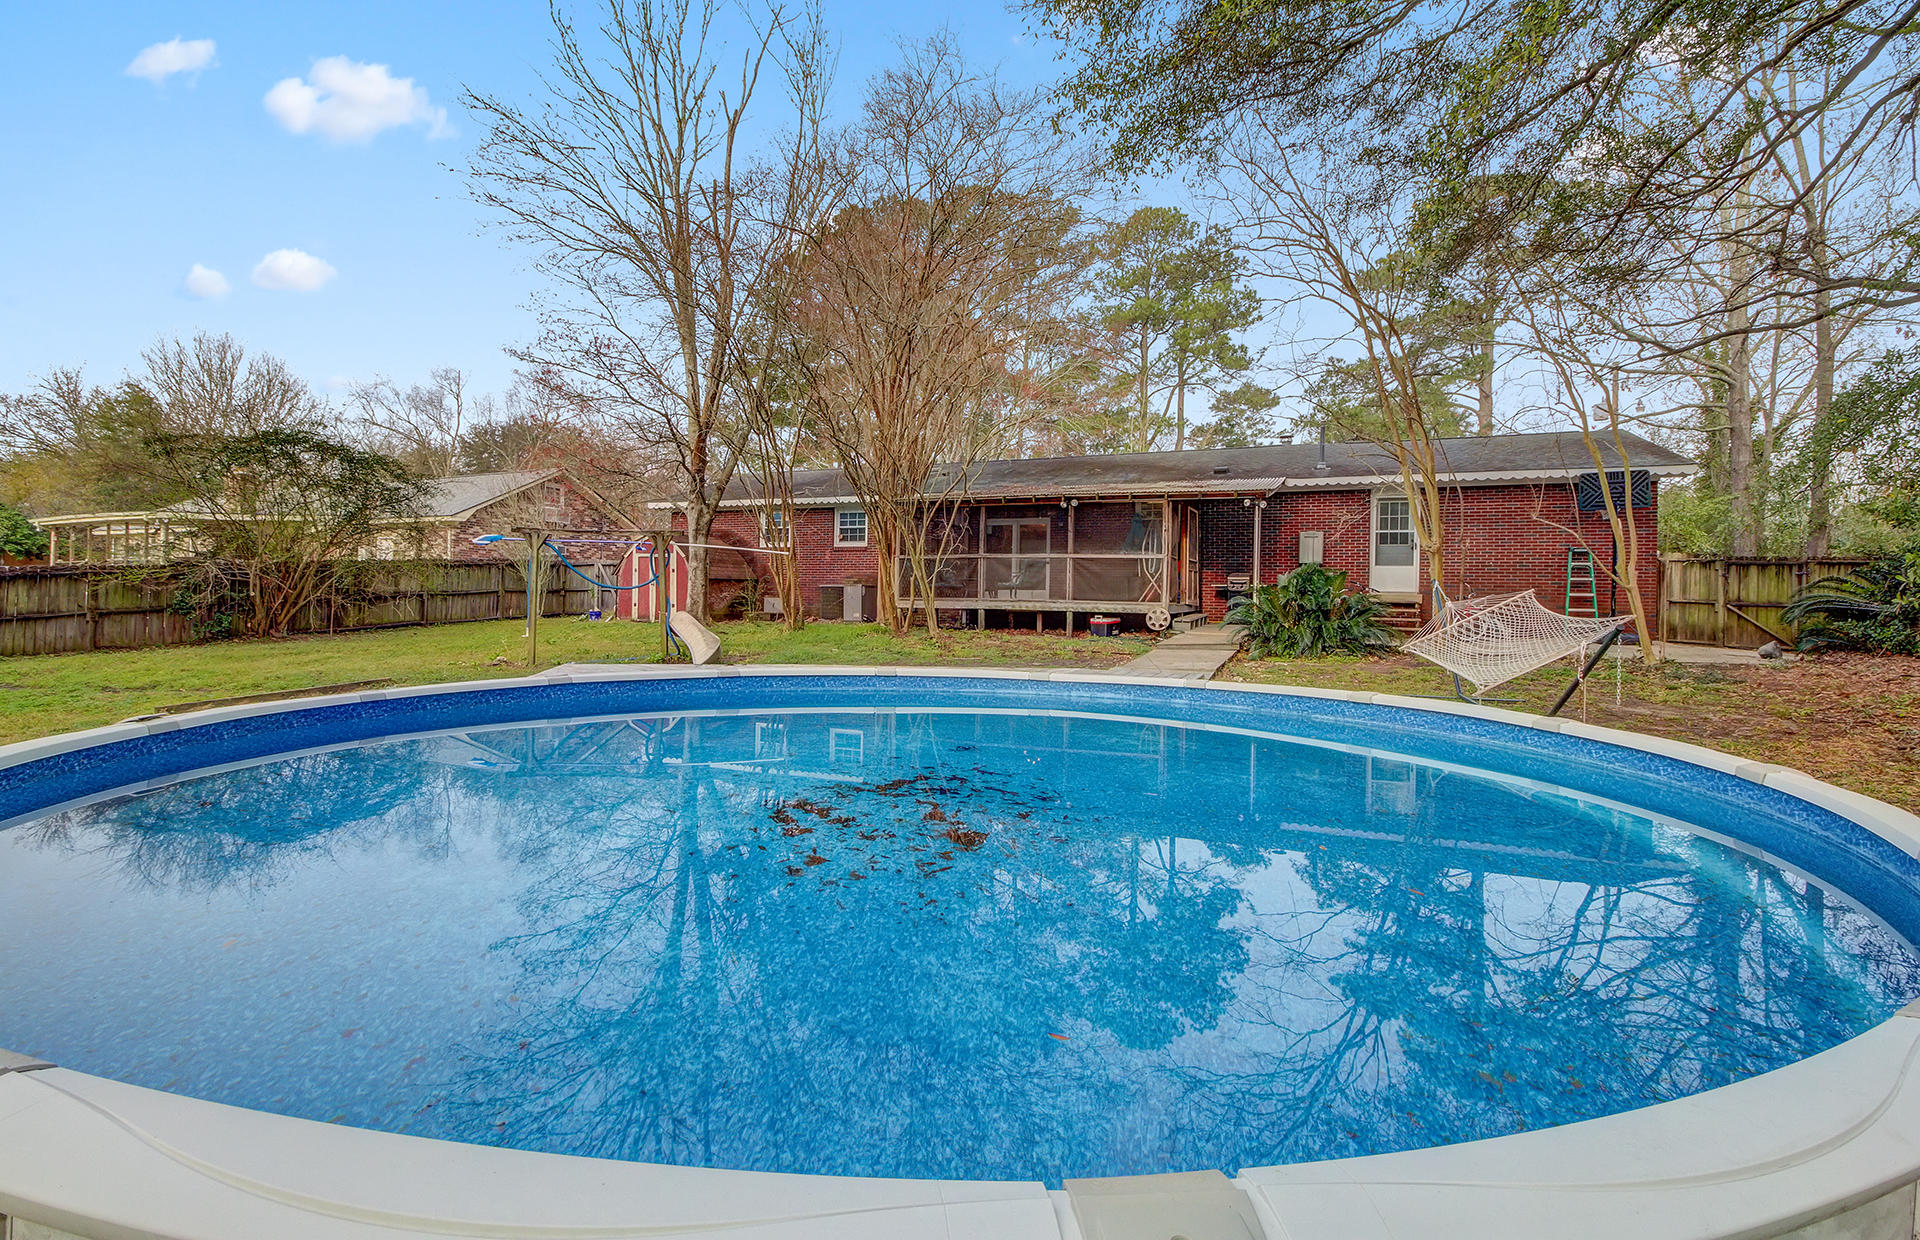 Tranquil Acres Homes For Sale - 134 Tranquil, Ladson, SC - 13